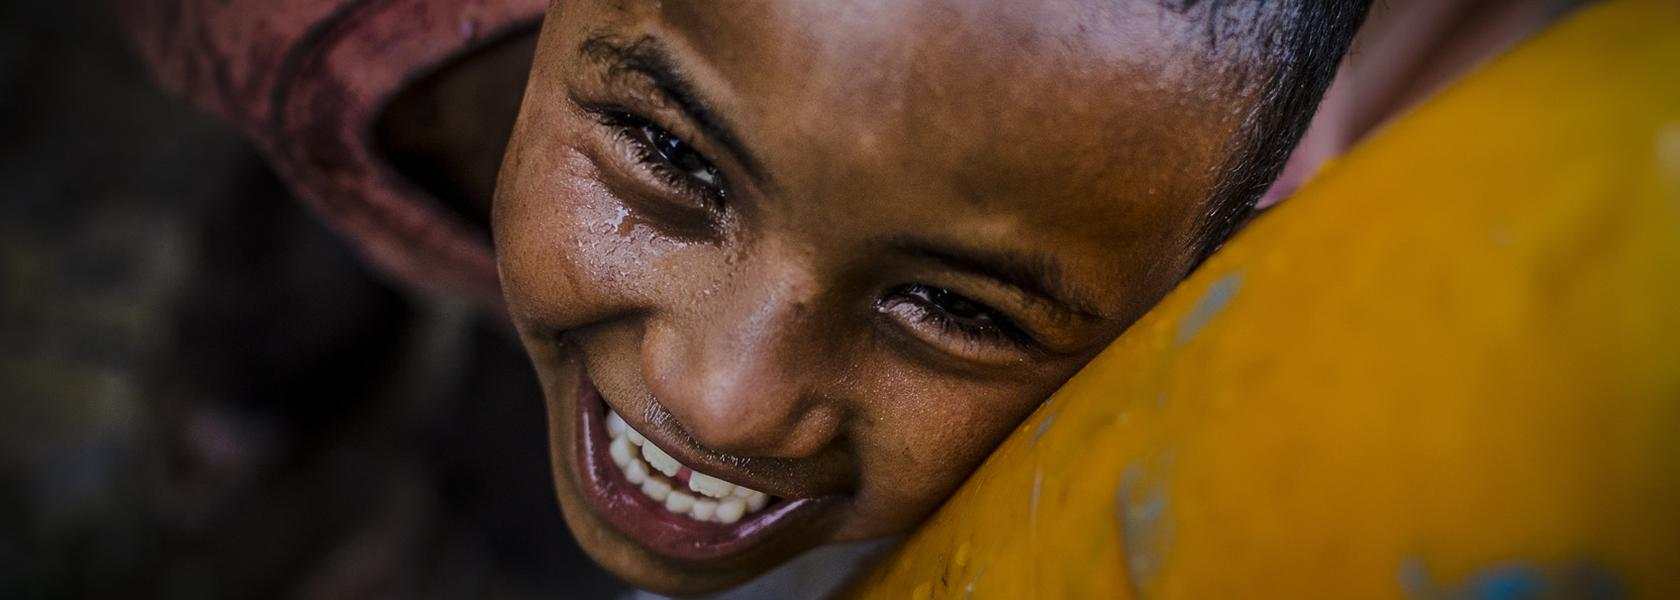 Drinking water, sanitation and hygiene in Ethiopia